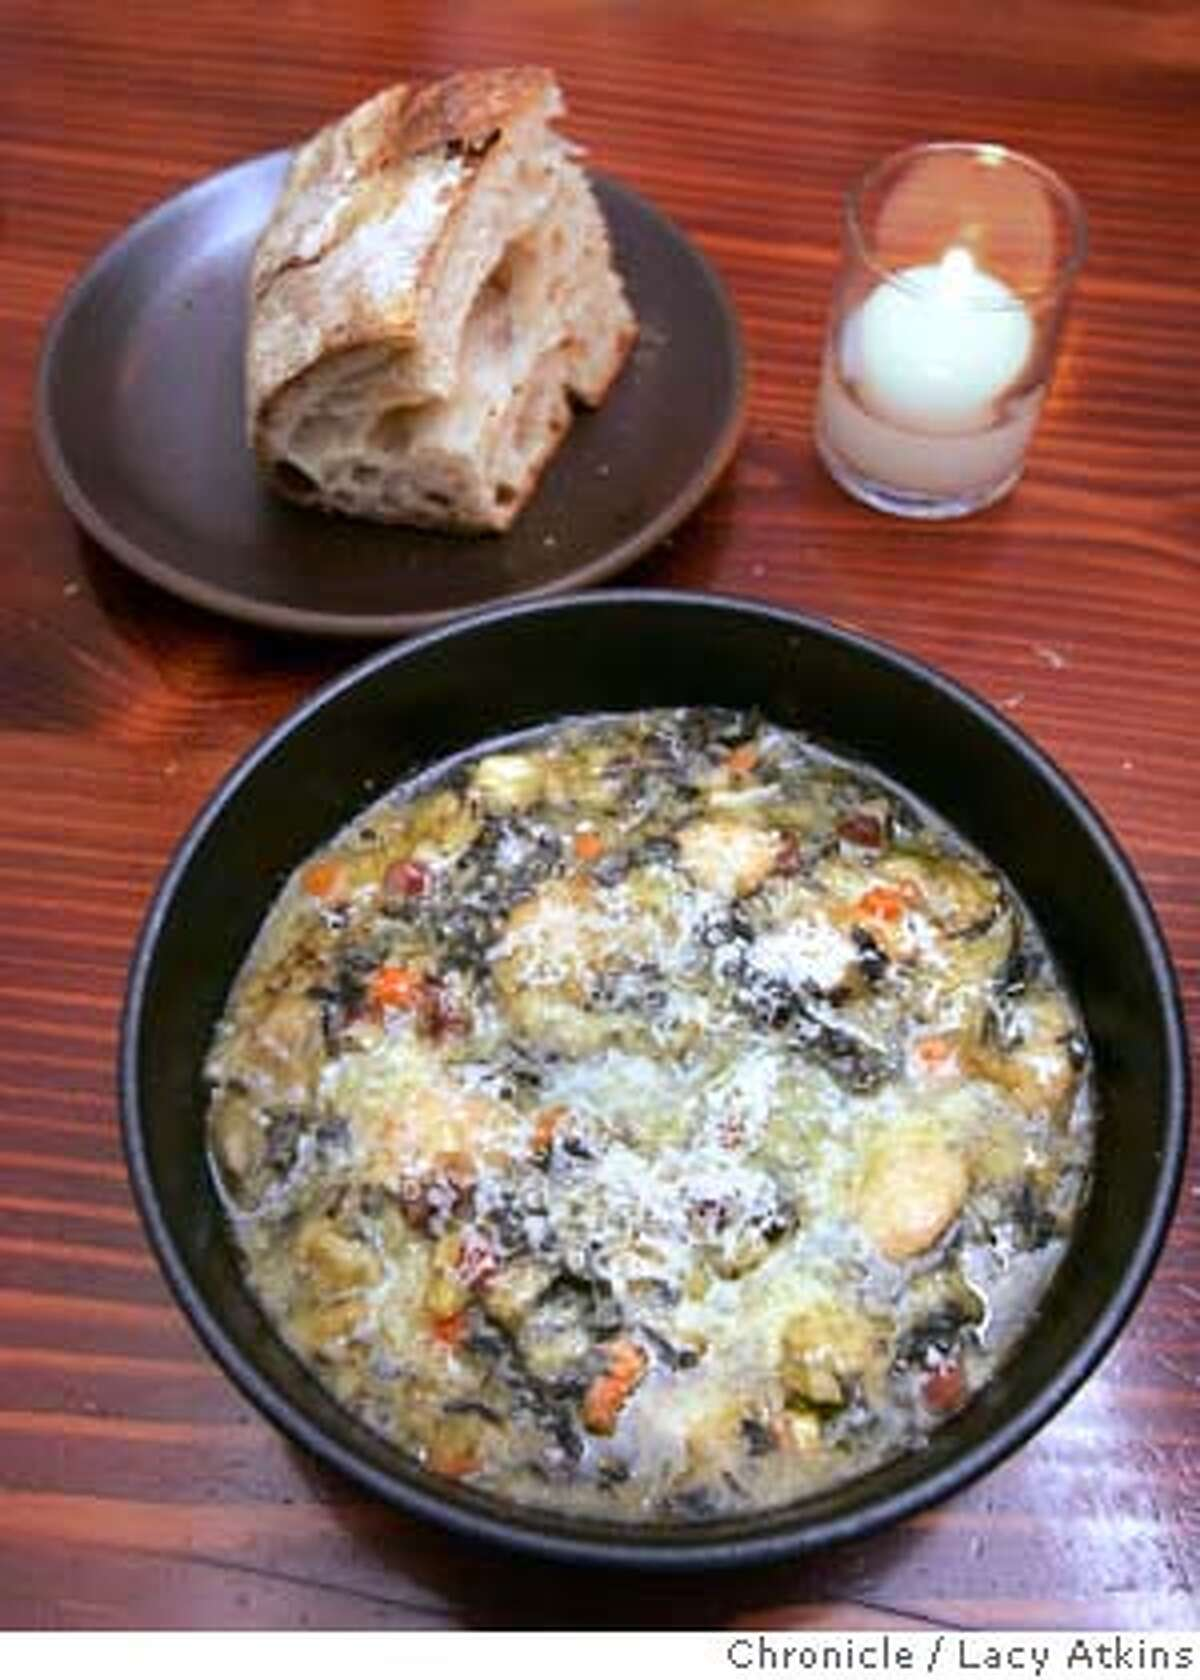 Soup from the pizzaiolo in Oakland, by chef Charlie Hallowell. This is actually slugged it is the final photograph to go with the rising stars issue of the chronicle magazine. we have photographed the chefs and by the time you reach this restraunt we will have photographed four of the five dishes. Dec.14, 2005 Photo By Lacy Atkins